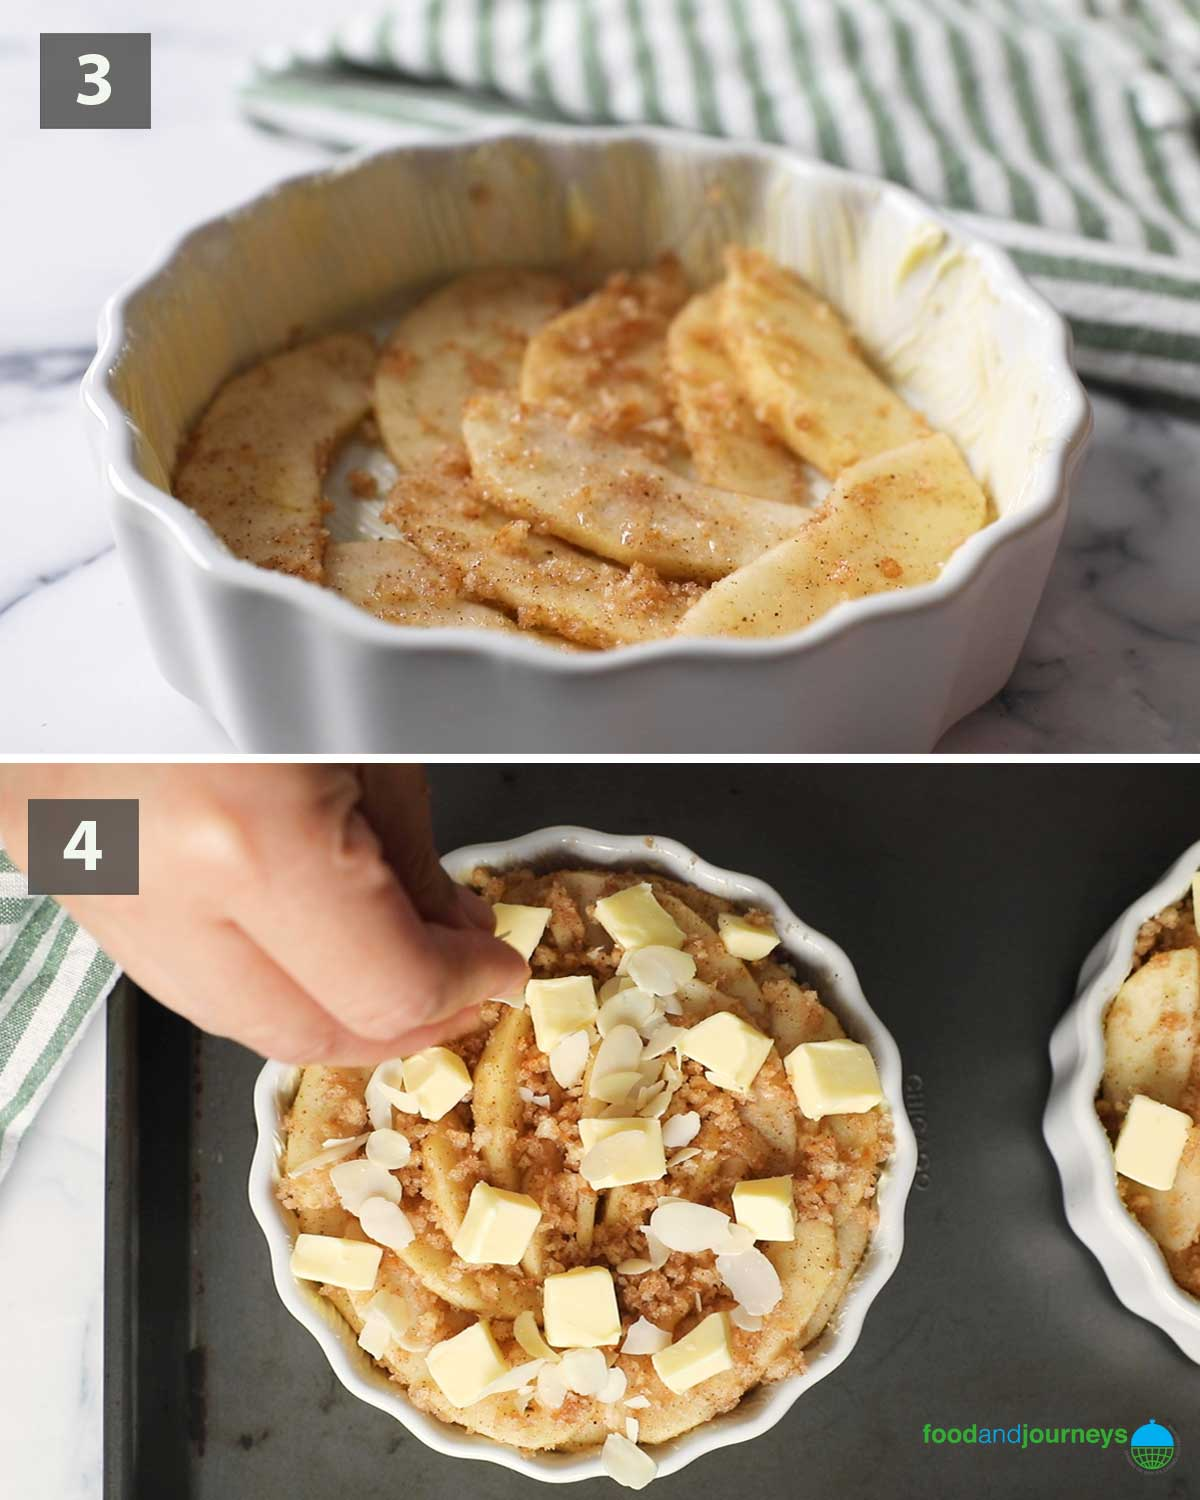 Second part of a collage of images showing the step by step process on how to make this Easy Apple Crumble.